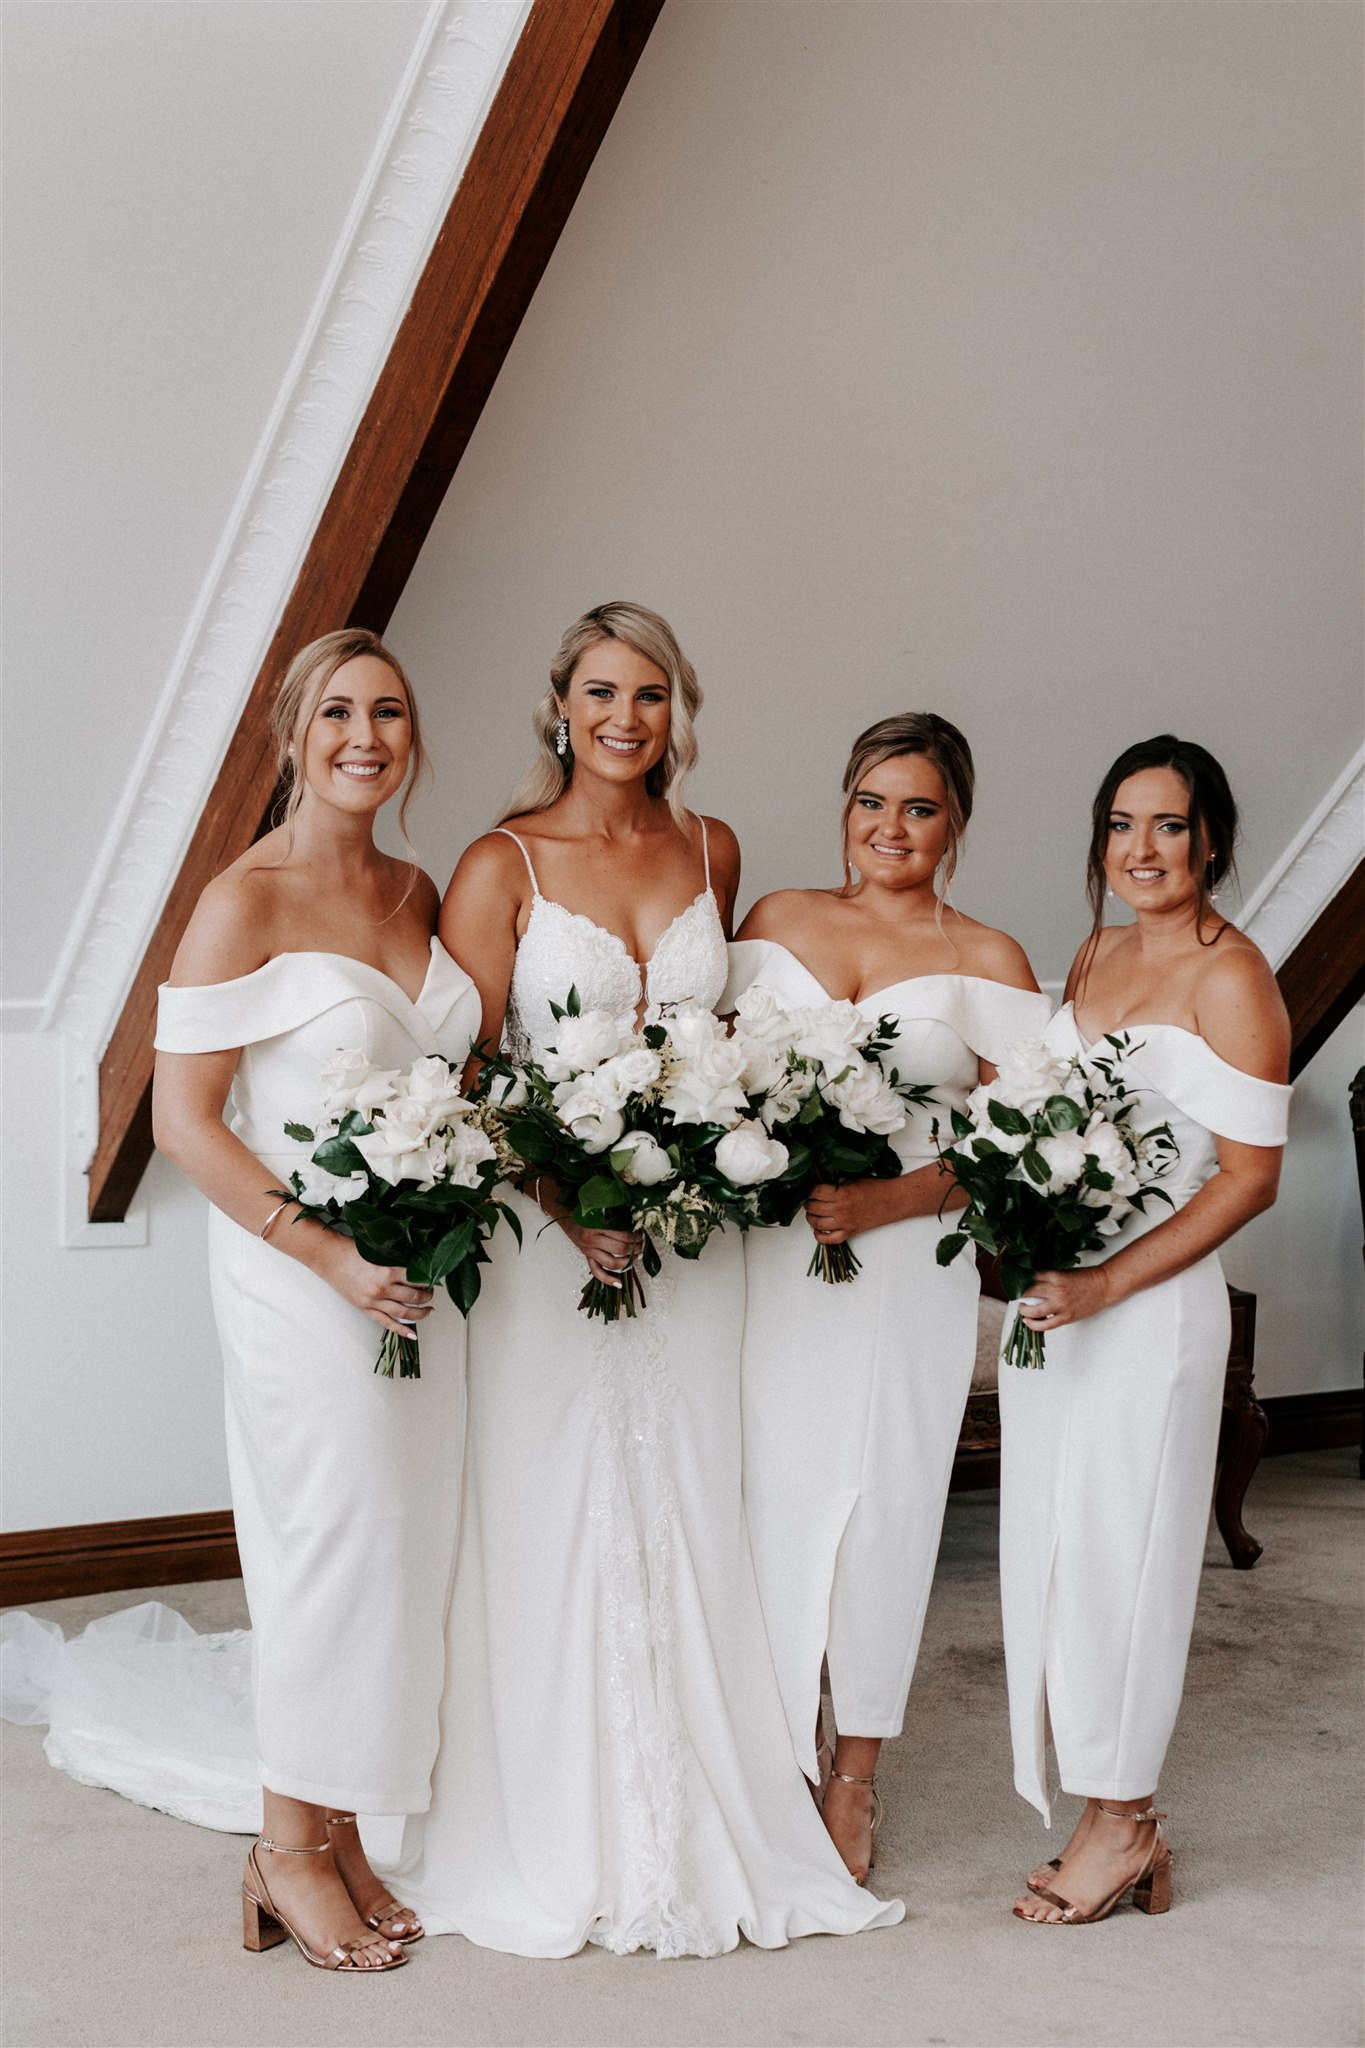 White and green wedding bouquets featuring roses